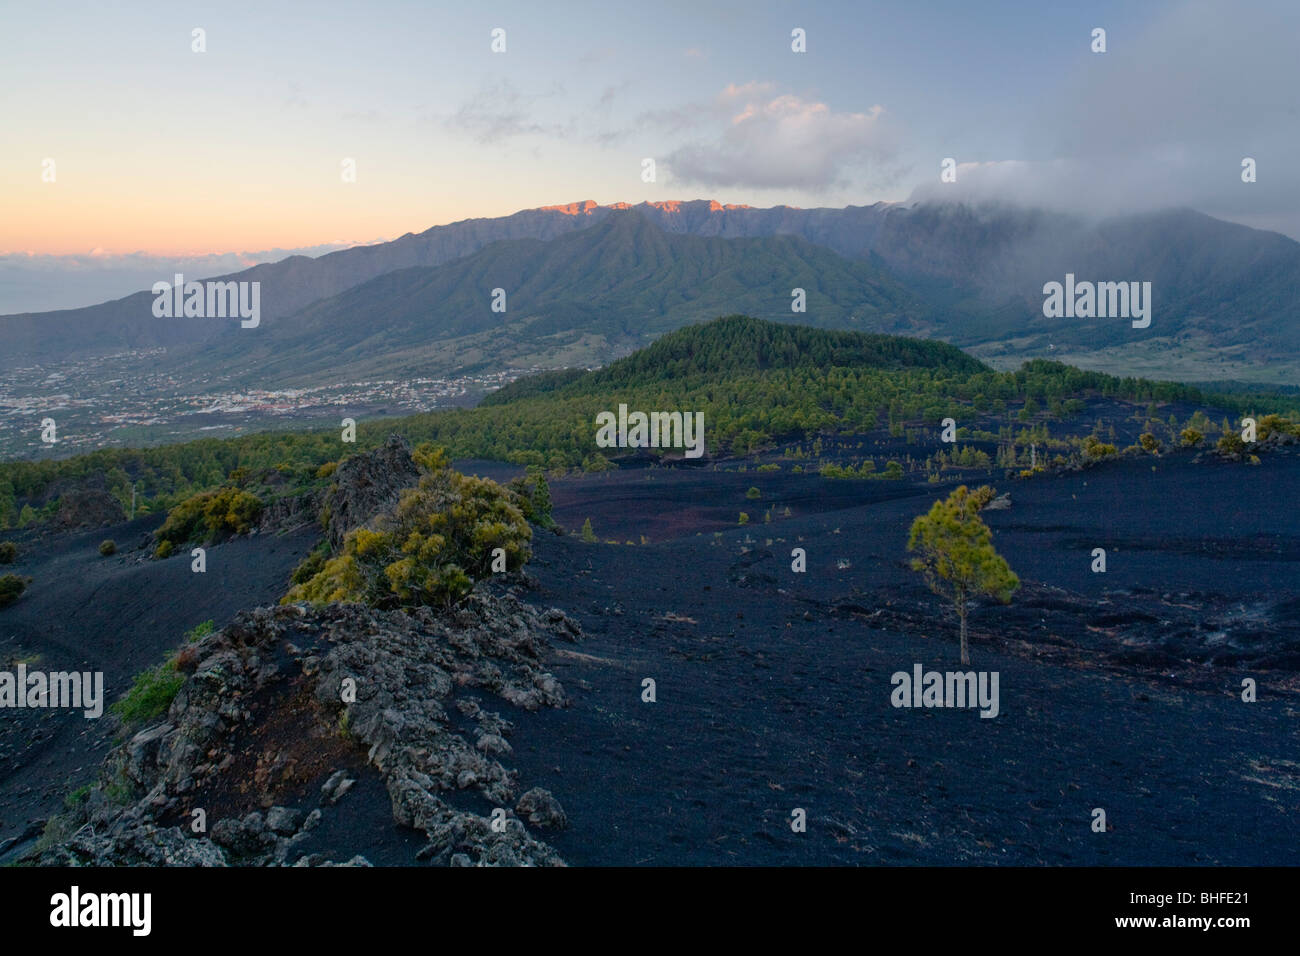 View from Montana Quemada towards the village of El Paso and Caldera de Taburiente, giant crater of extinct volcano, - Stock Image